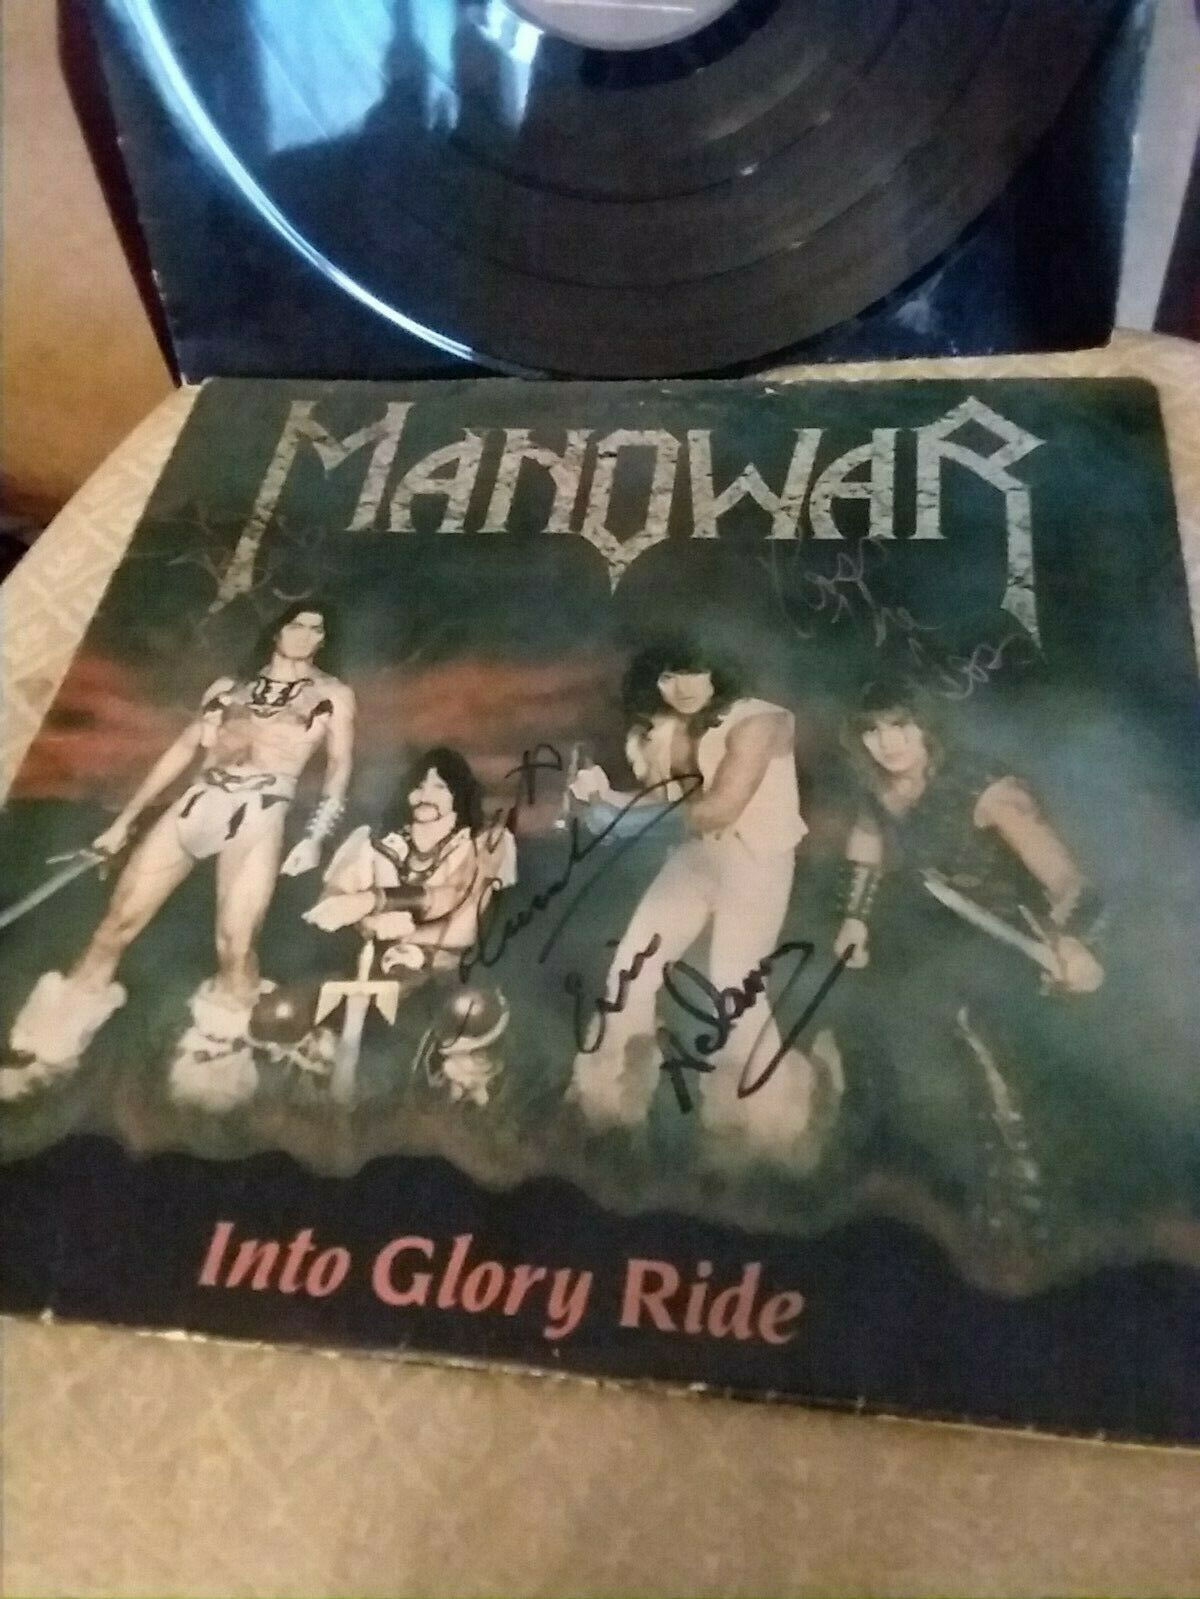 Manowar - into glory ride - SIGNED BY 4 BAND MEMBERS VG-/VG+ ORIGINAL COPY